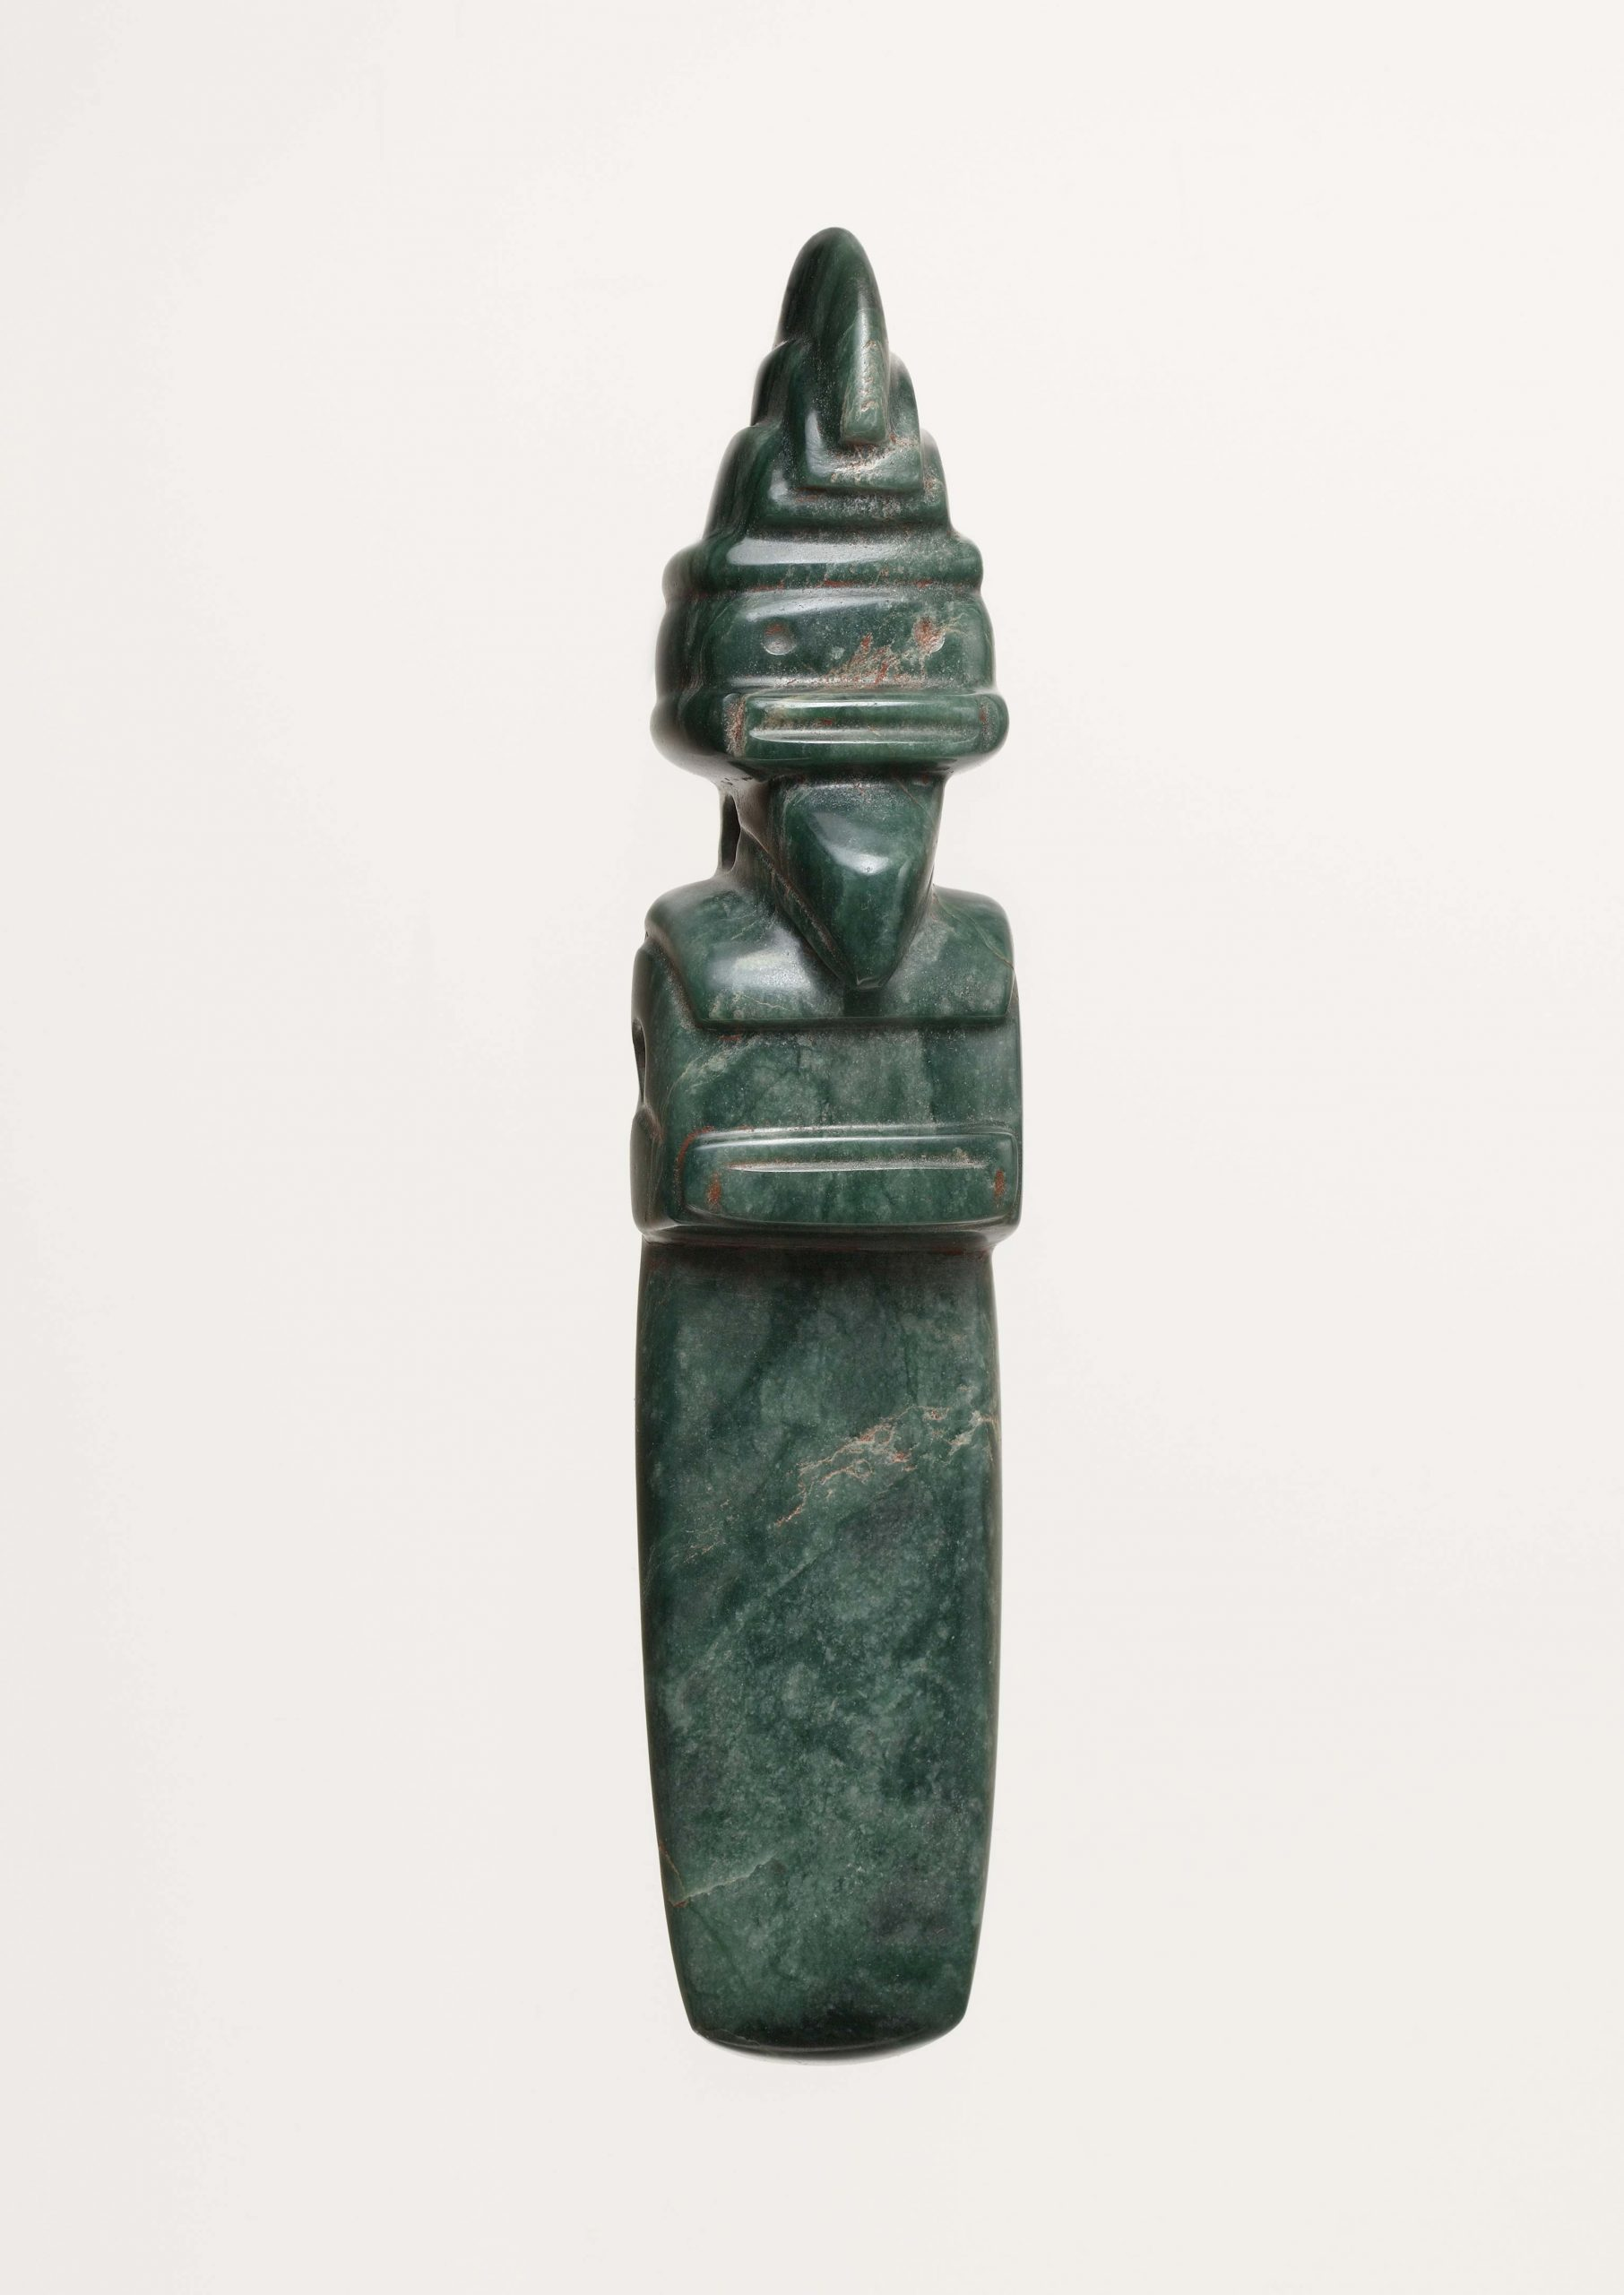 Dark green stone sculpture of a Costa Rican bird wearing a crown.